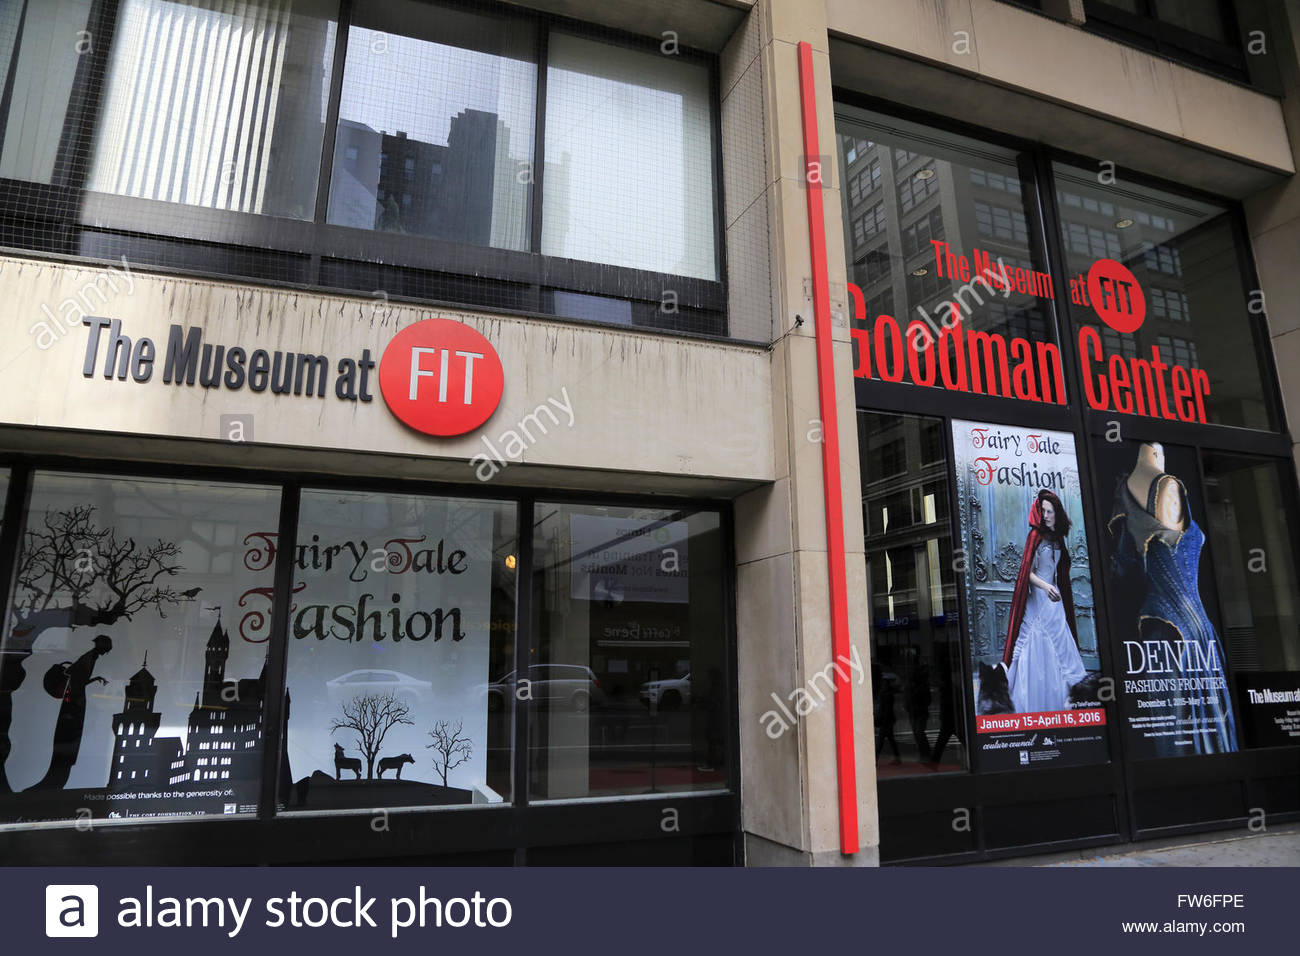 Museum of Contemporary African Diaspora Arts (MoCADA) New York City, The Museum at Fashion Institute of Technology FIT Goodman Center ...